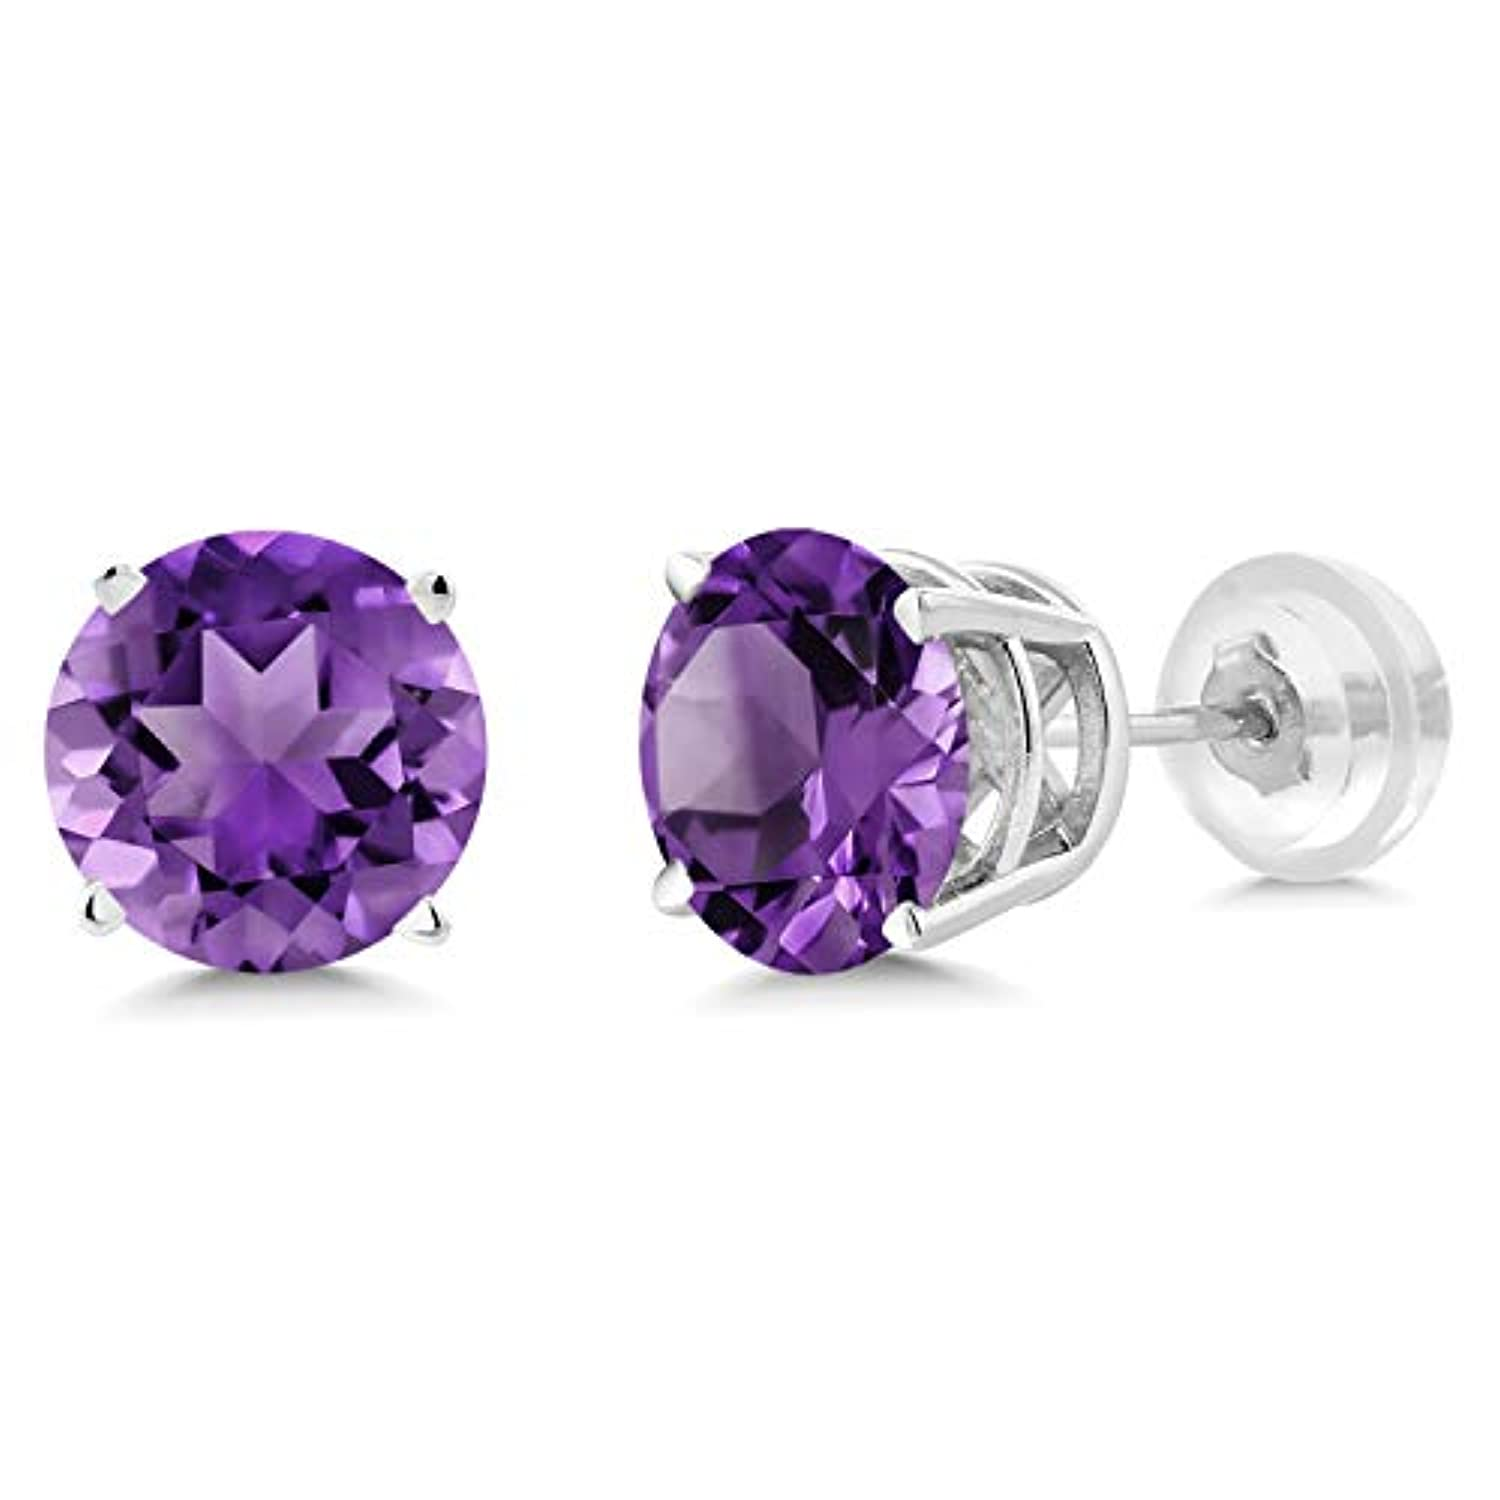 14K Gold Purple Amethyst Stud Earrings